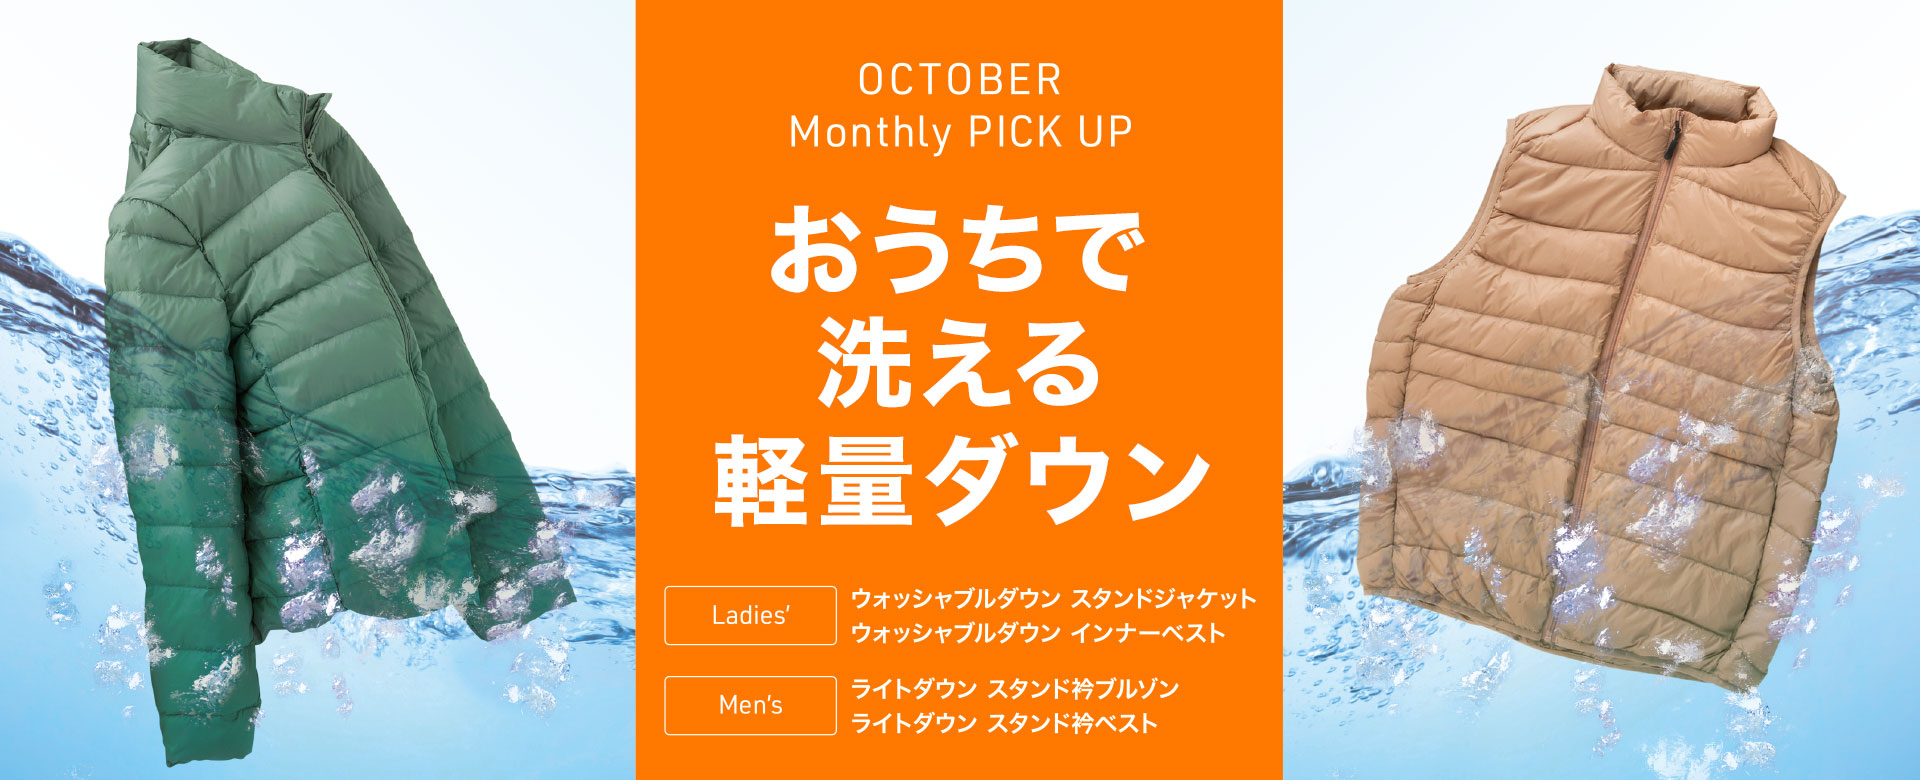 OCTOBER Monthly PICK UP おうちで洗える軽量ダウン